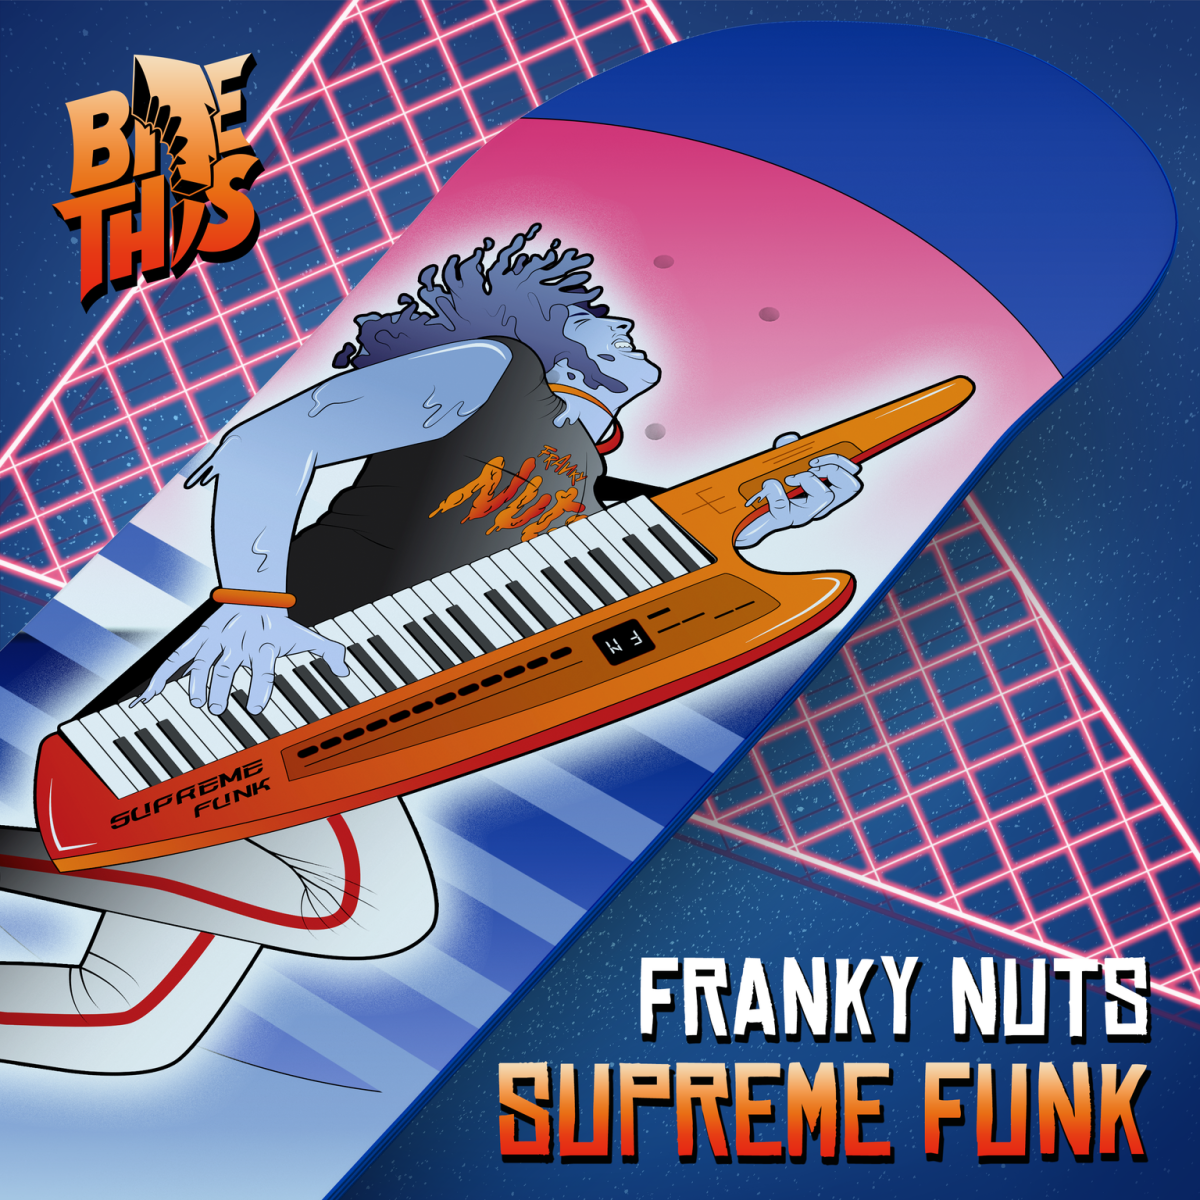 franky nuts supreme funk cover art